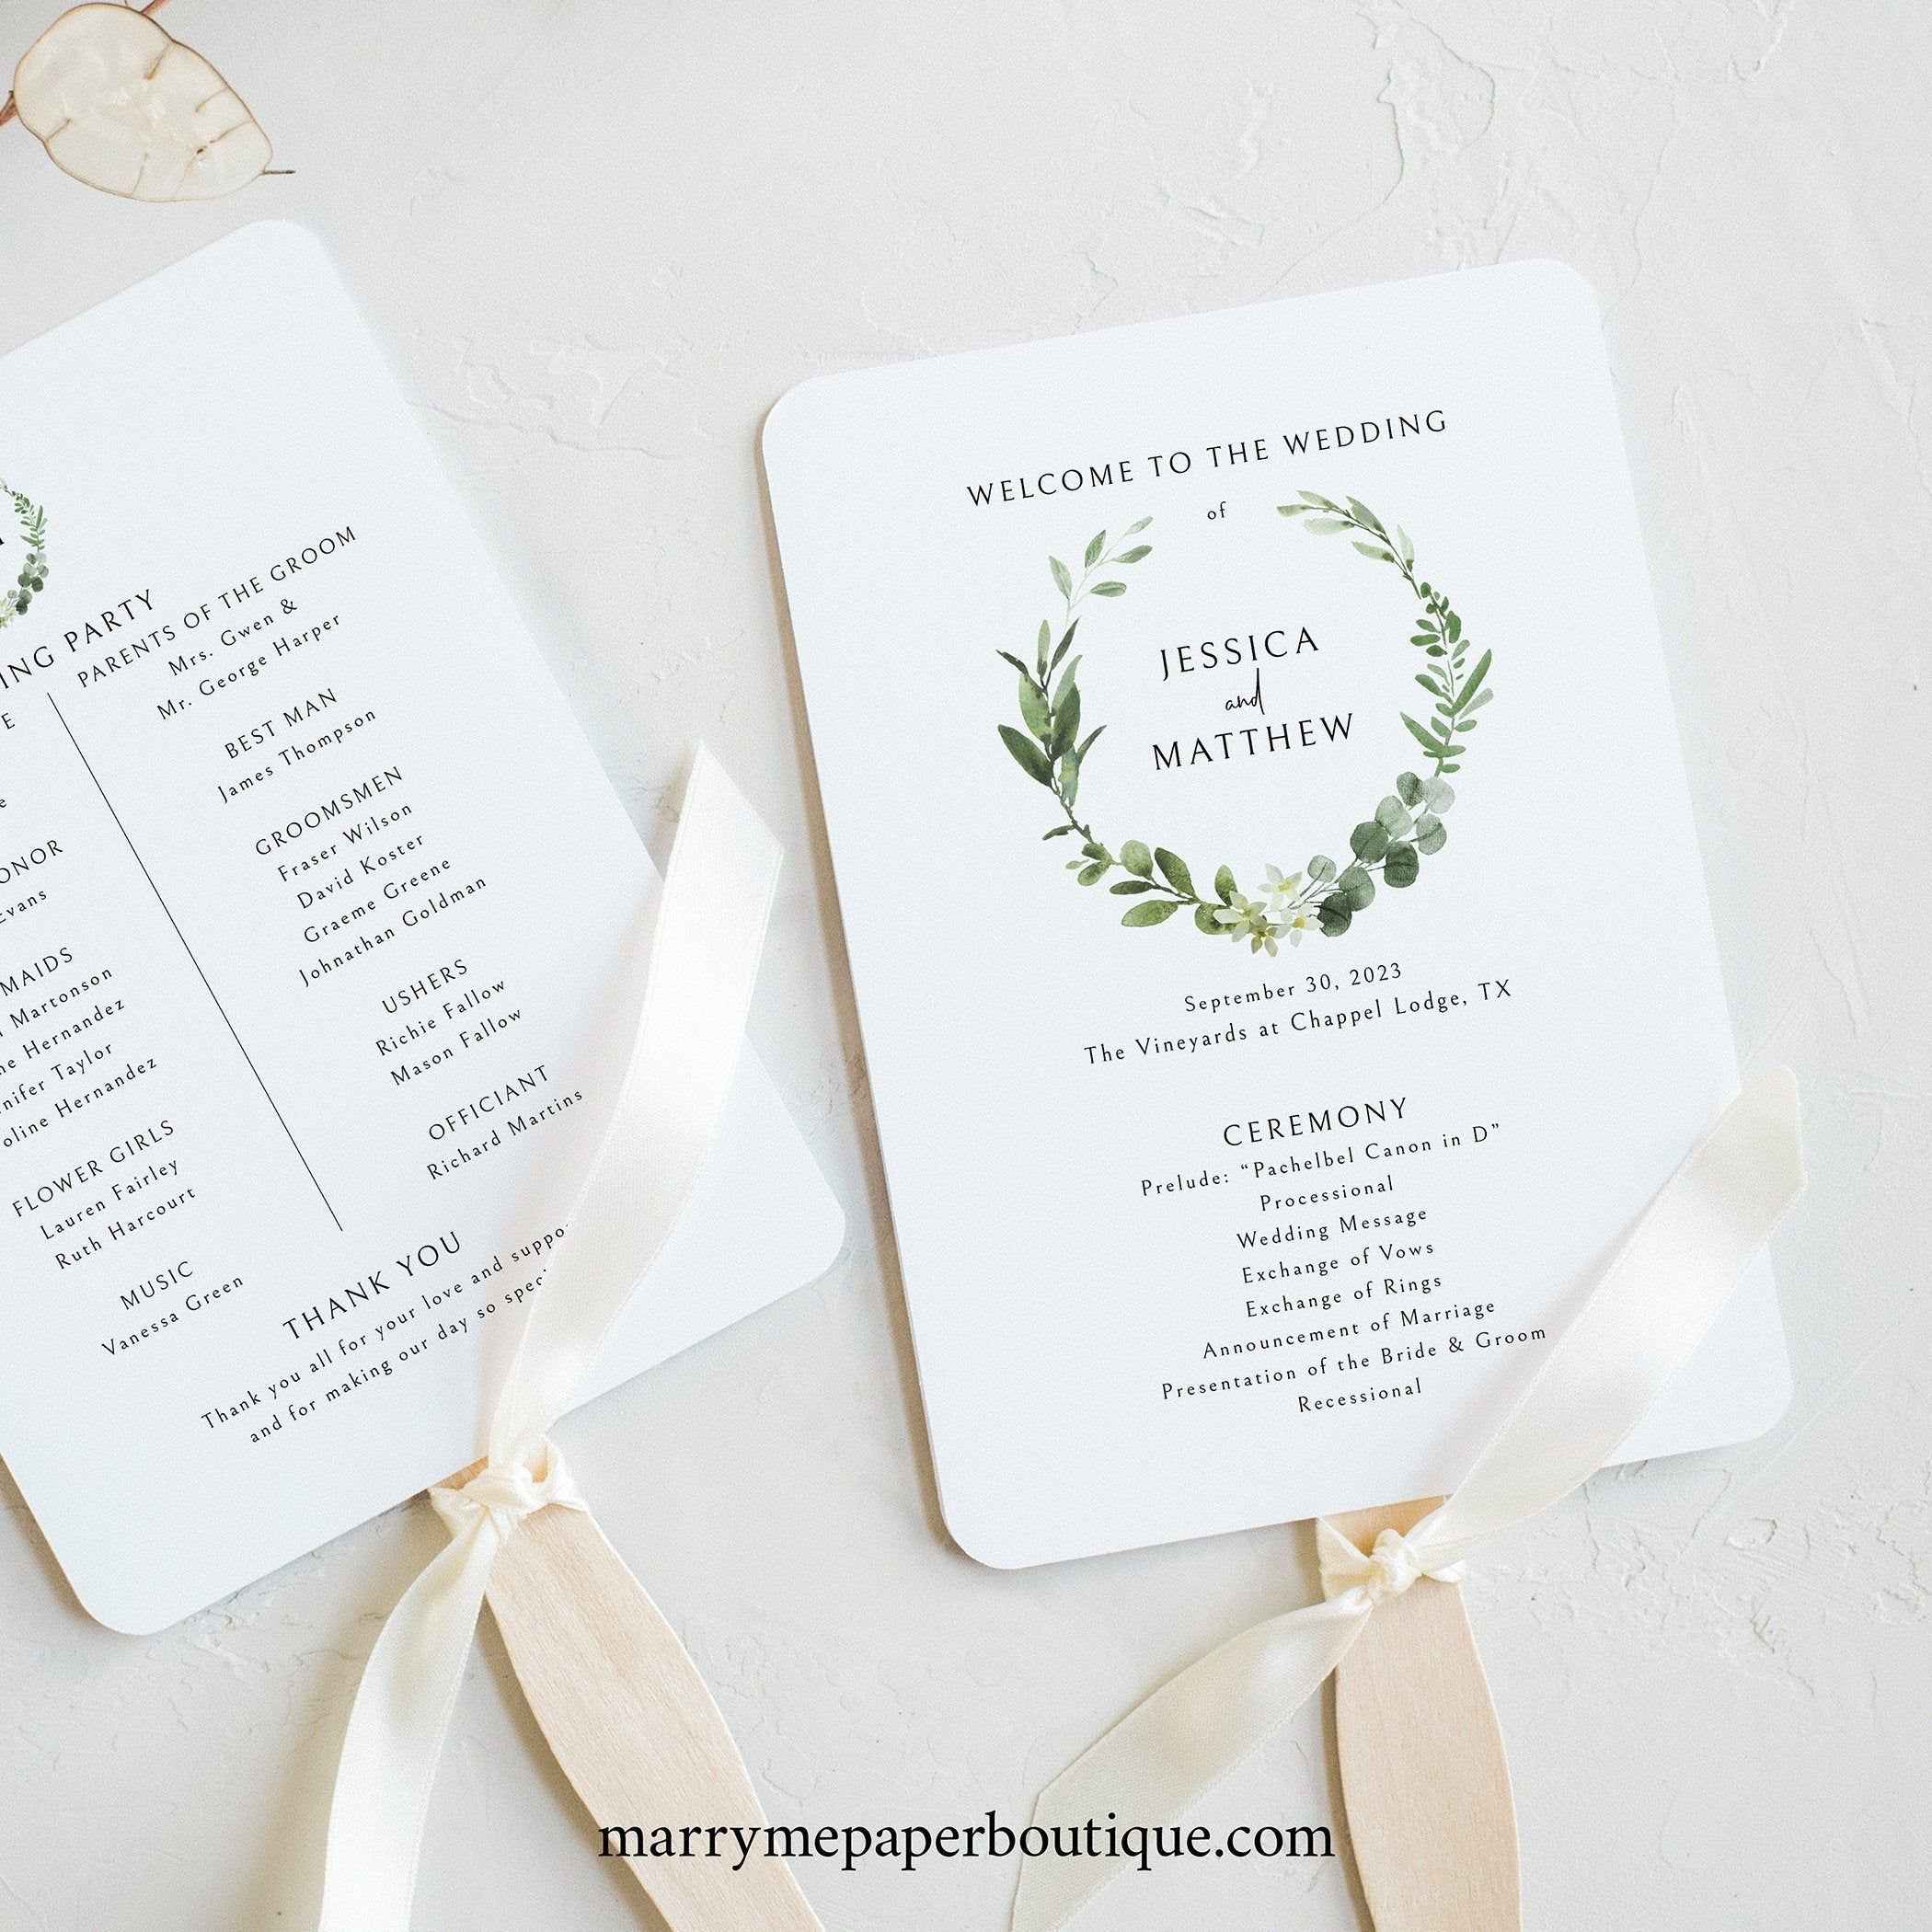 000 Surprising Wedding Program Fan Template High Resolution  Free Word Paddle Downloadable That Can Be PrintedFull